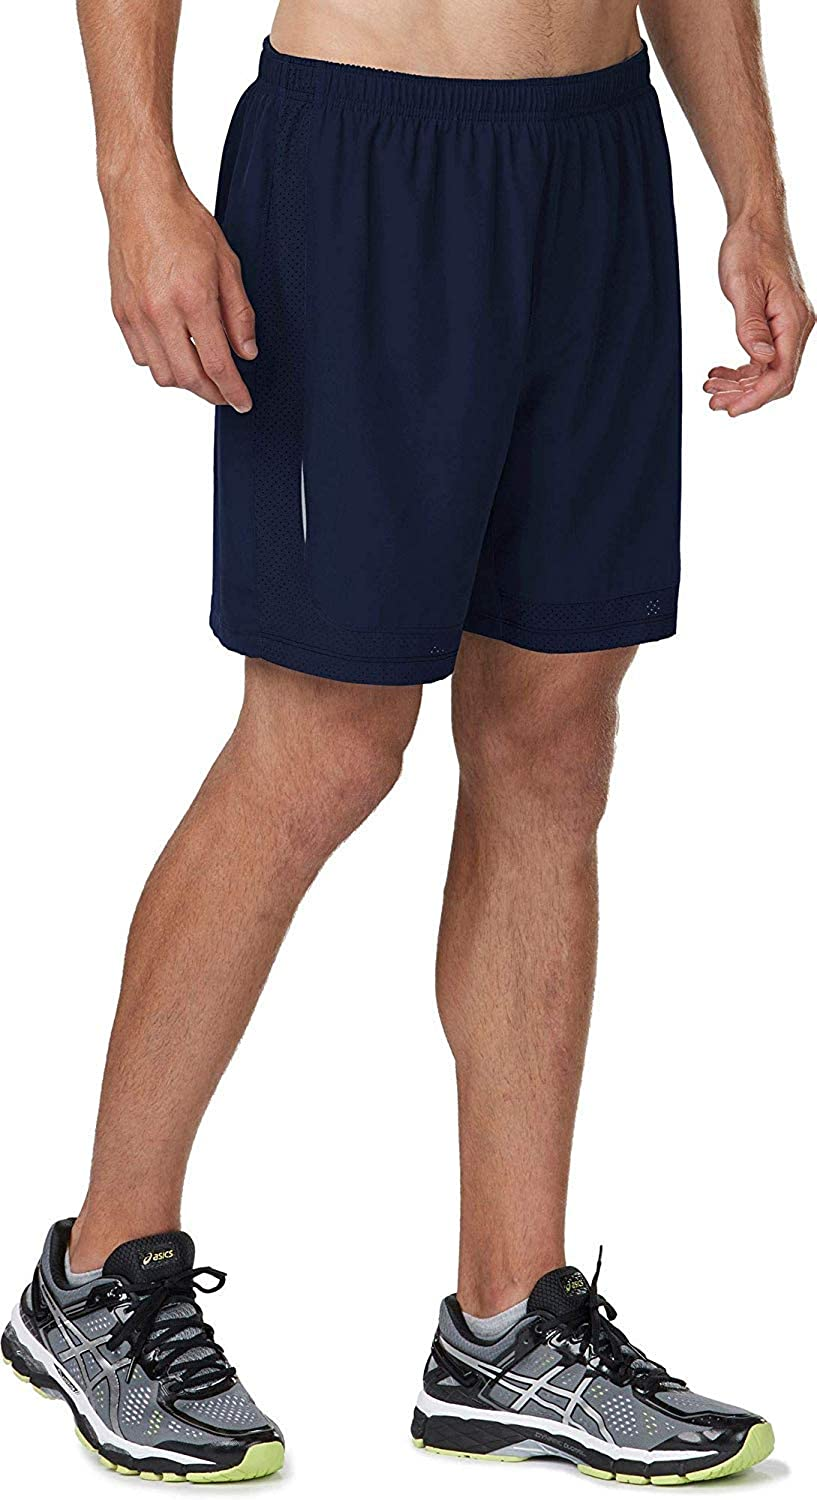 R-Gear Men's 2-in-1 Running Workout Gym Shorts, 6-Inch Length, Inner Compression Shorts, Multiple Pockets | Power-Up